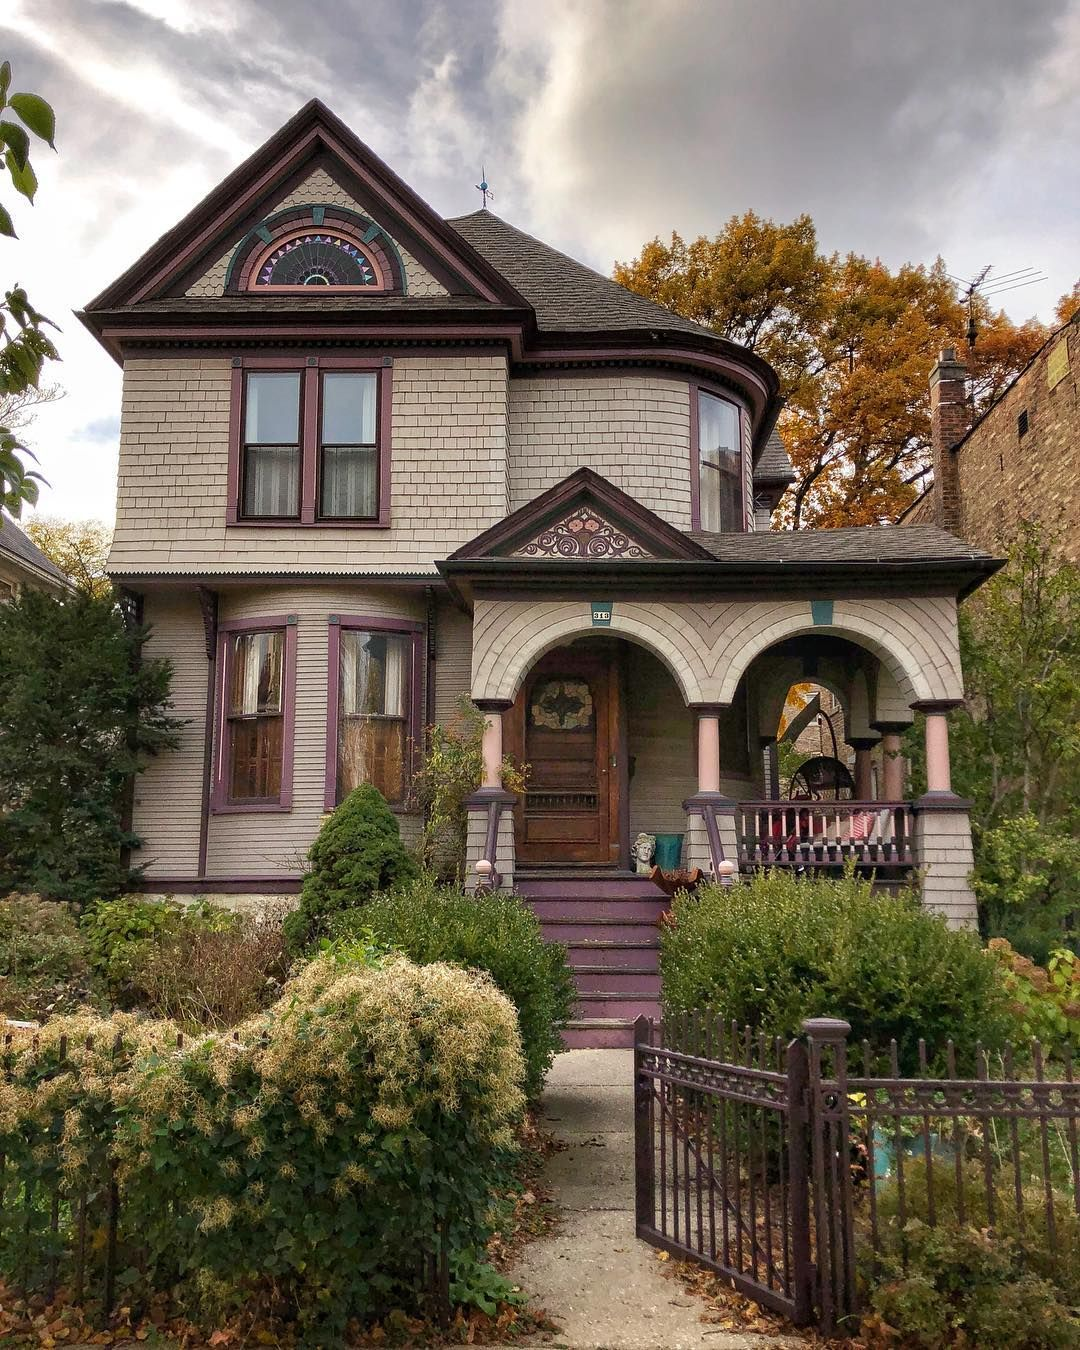 Pretty Old House On Instagram Pretty Old House Oak Park Il November 2 2018 Prettyoldhouse Iphoneography Oldhouse Old Old Houses Victorian Homes House